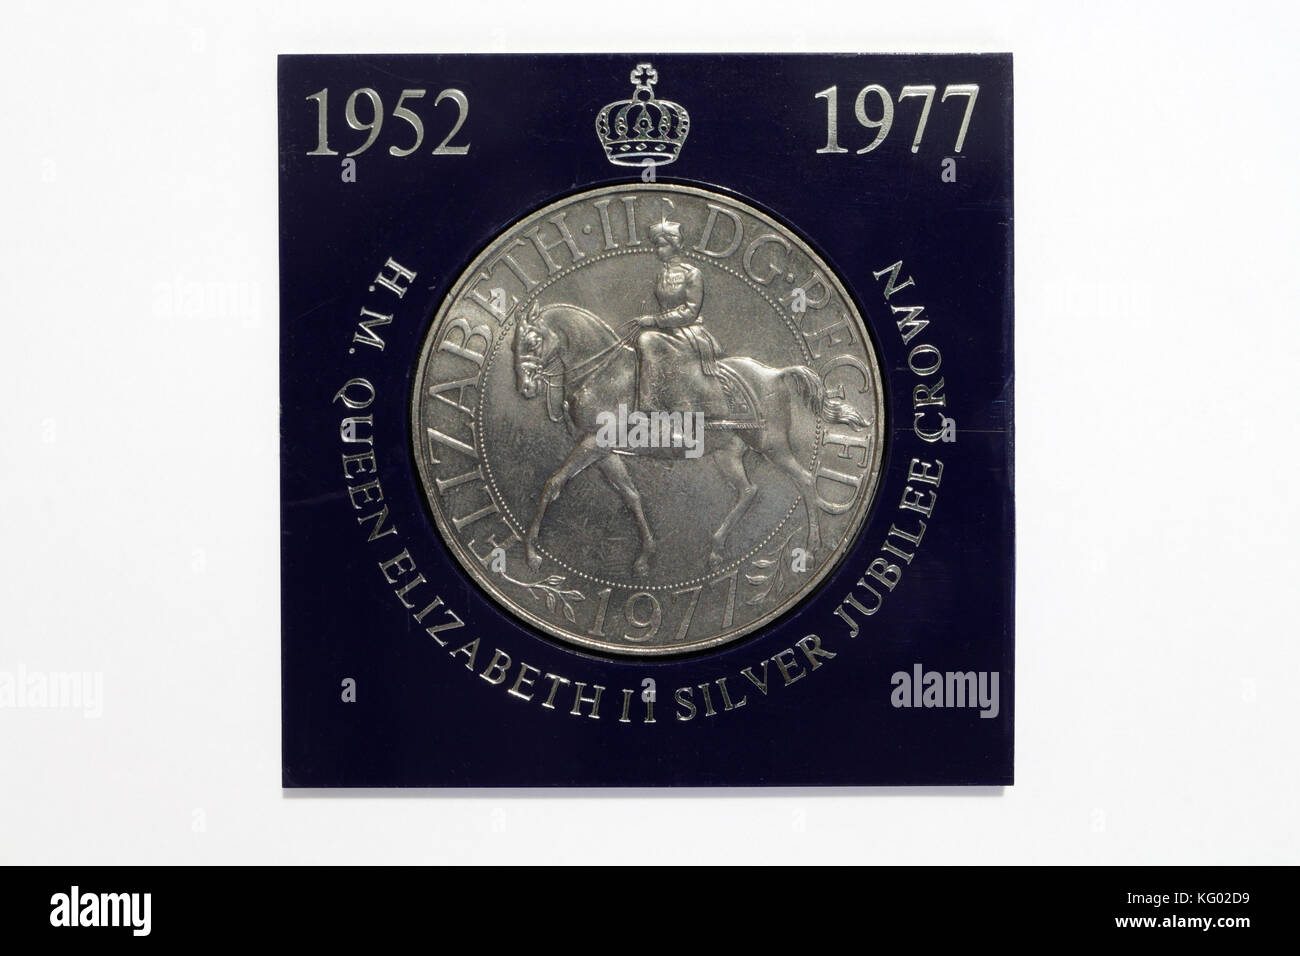 Commerative coin, Queen Elizabeth II silver Jubilee 1977 - Stock Image